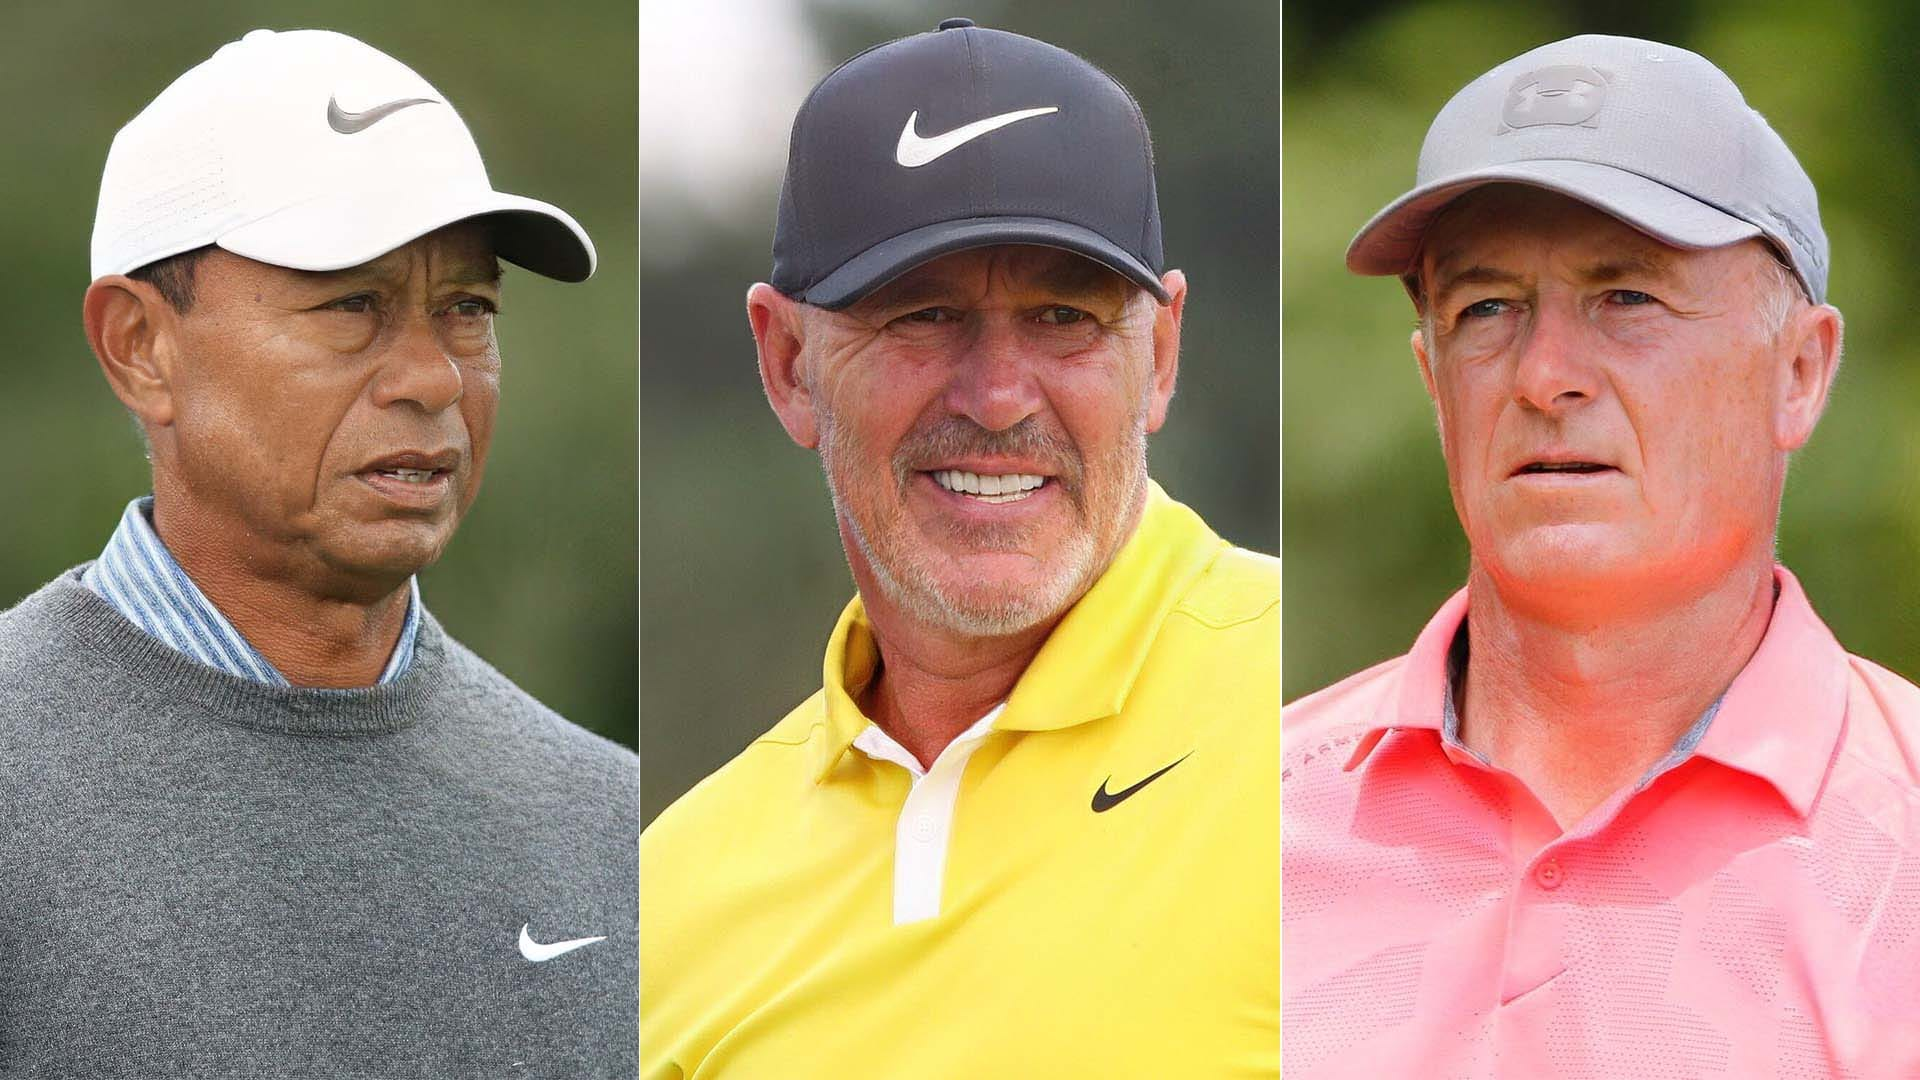 Your favorite PGA Tour players as old guys via the Face App   Golf